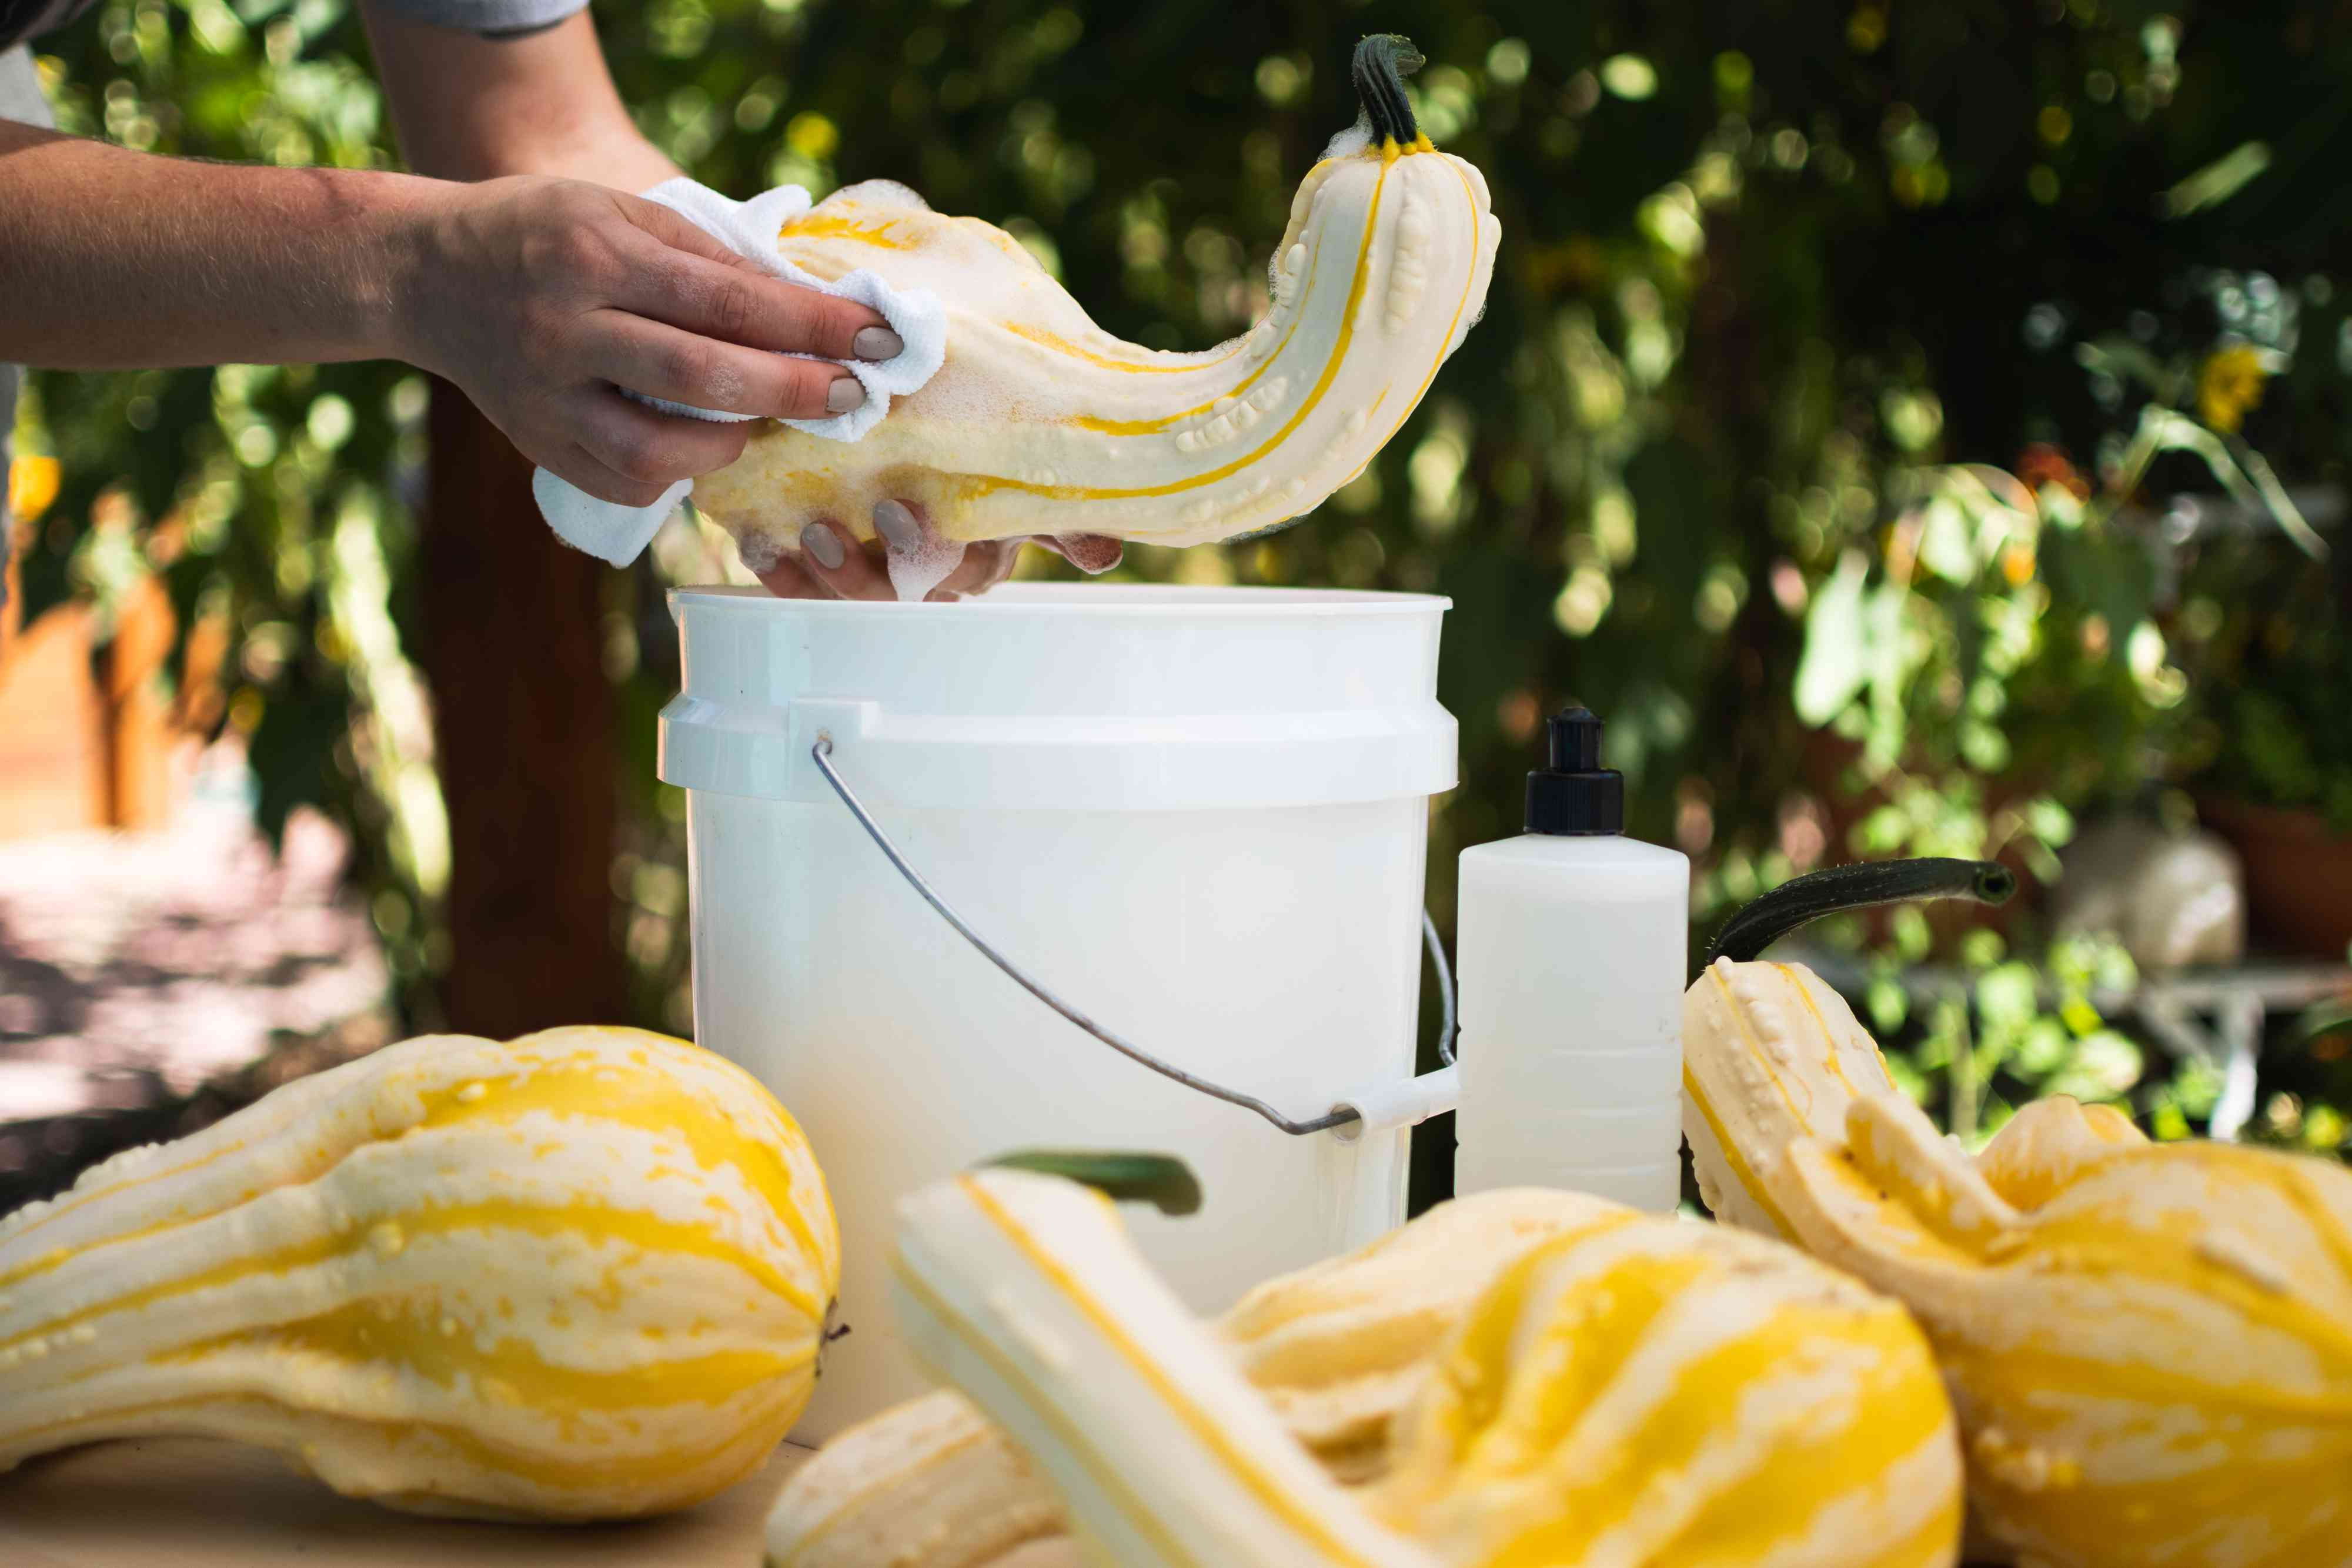 White and yellow gourd being washed in white bucket of soapy water